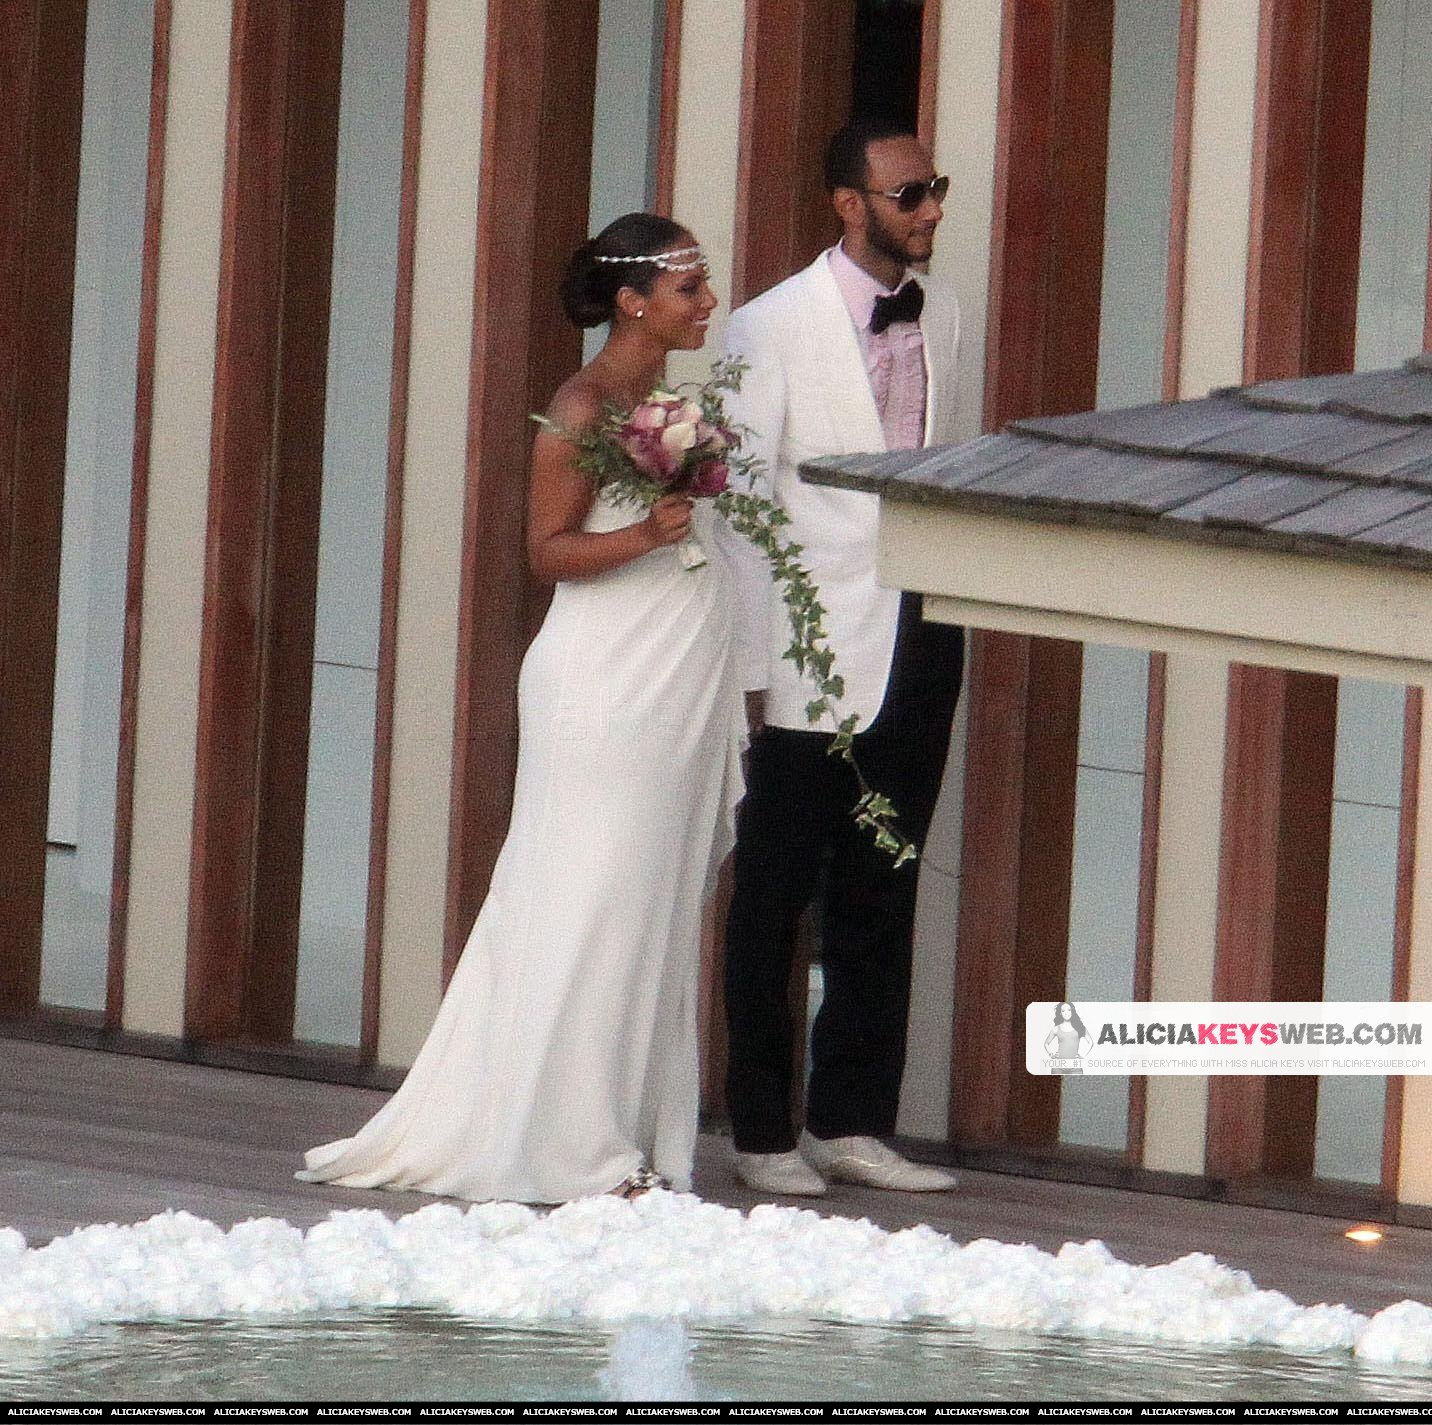 Wedding Photos: Alicia Keys